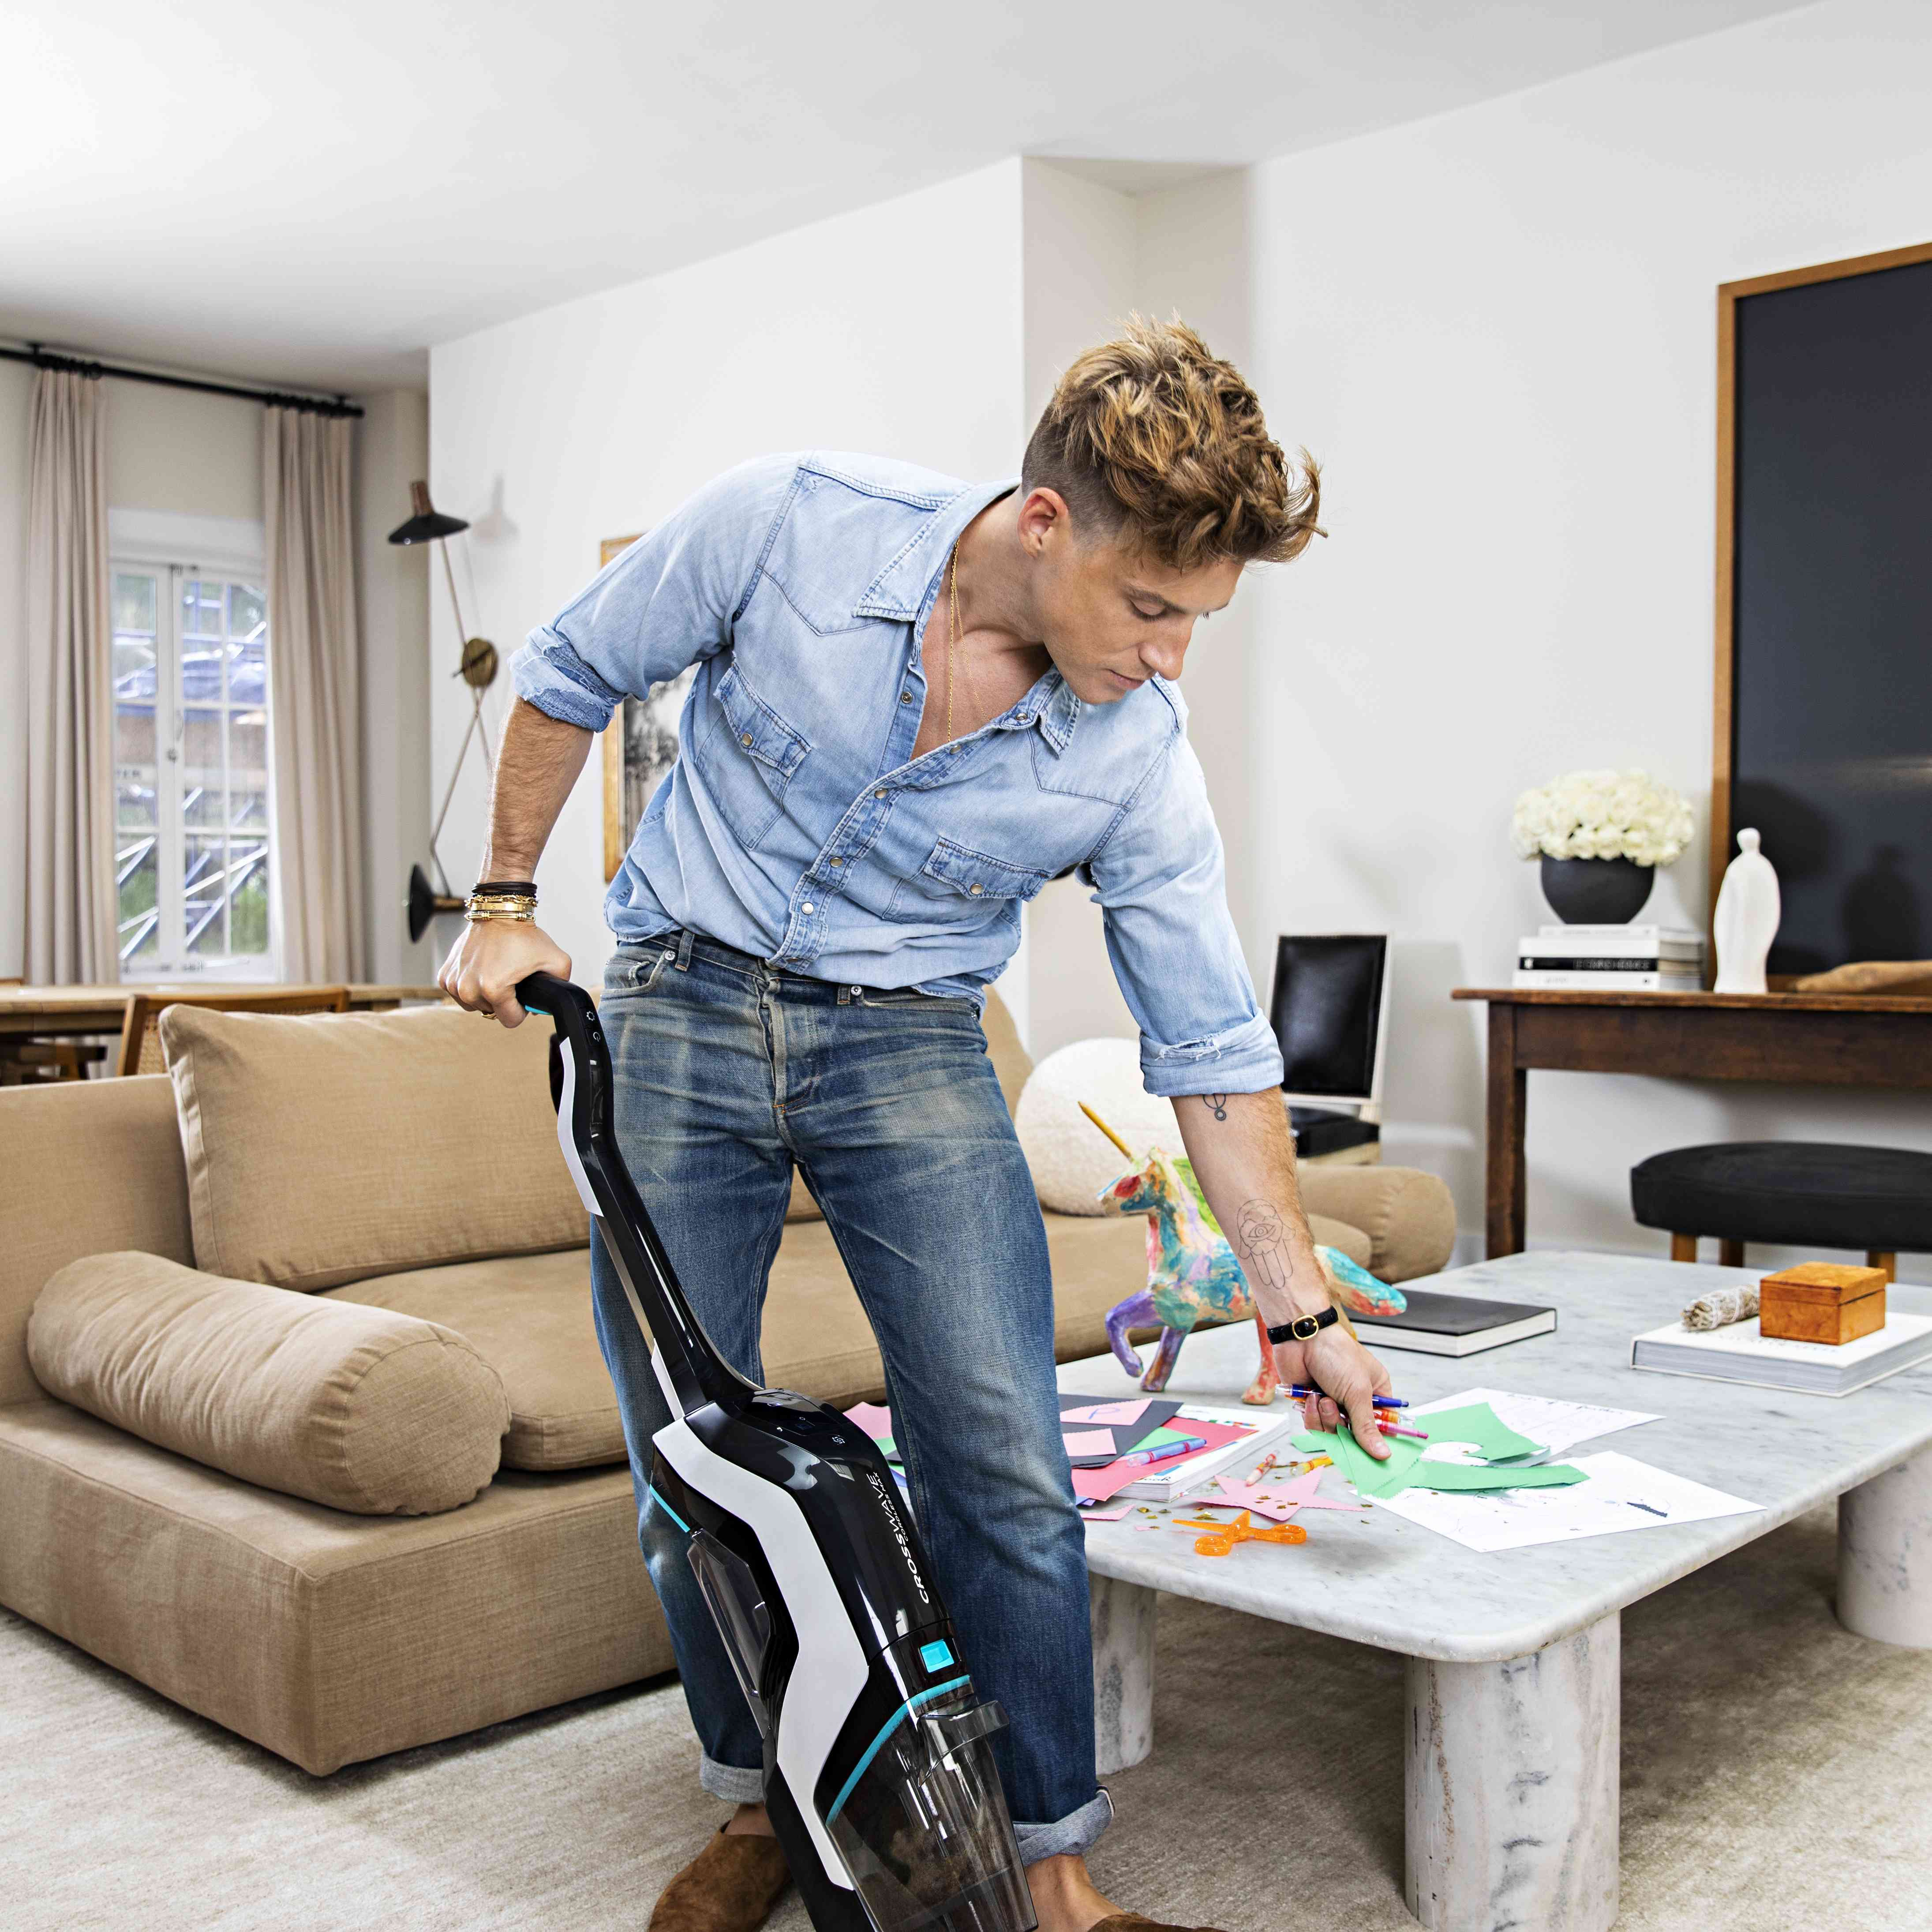 Jeremiah Brent using BISSELL CrossWave Cordless Max to clean up after arts and crafts project